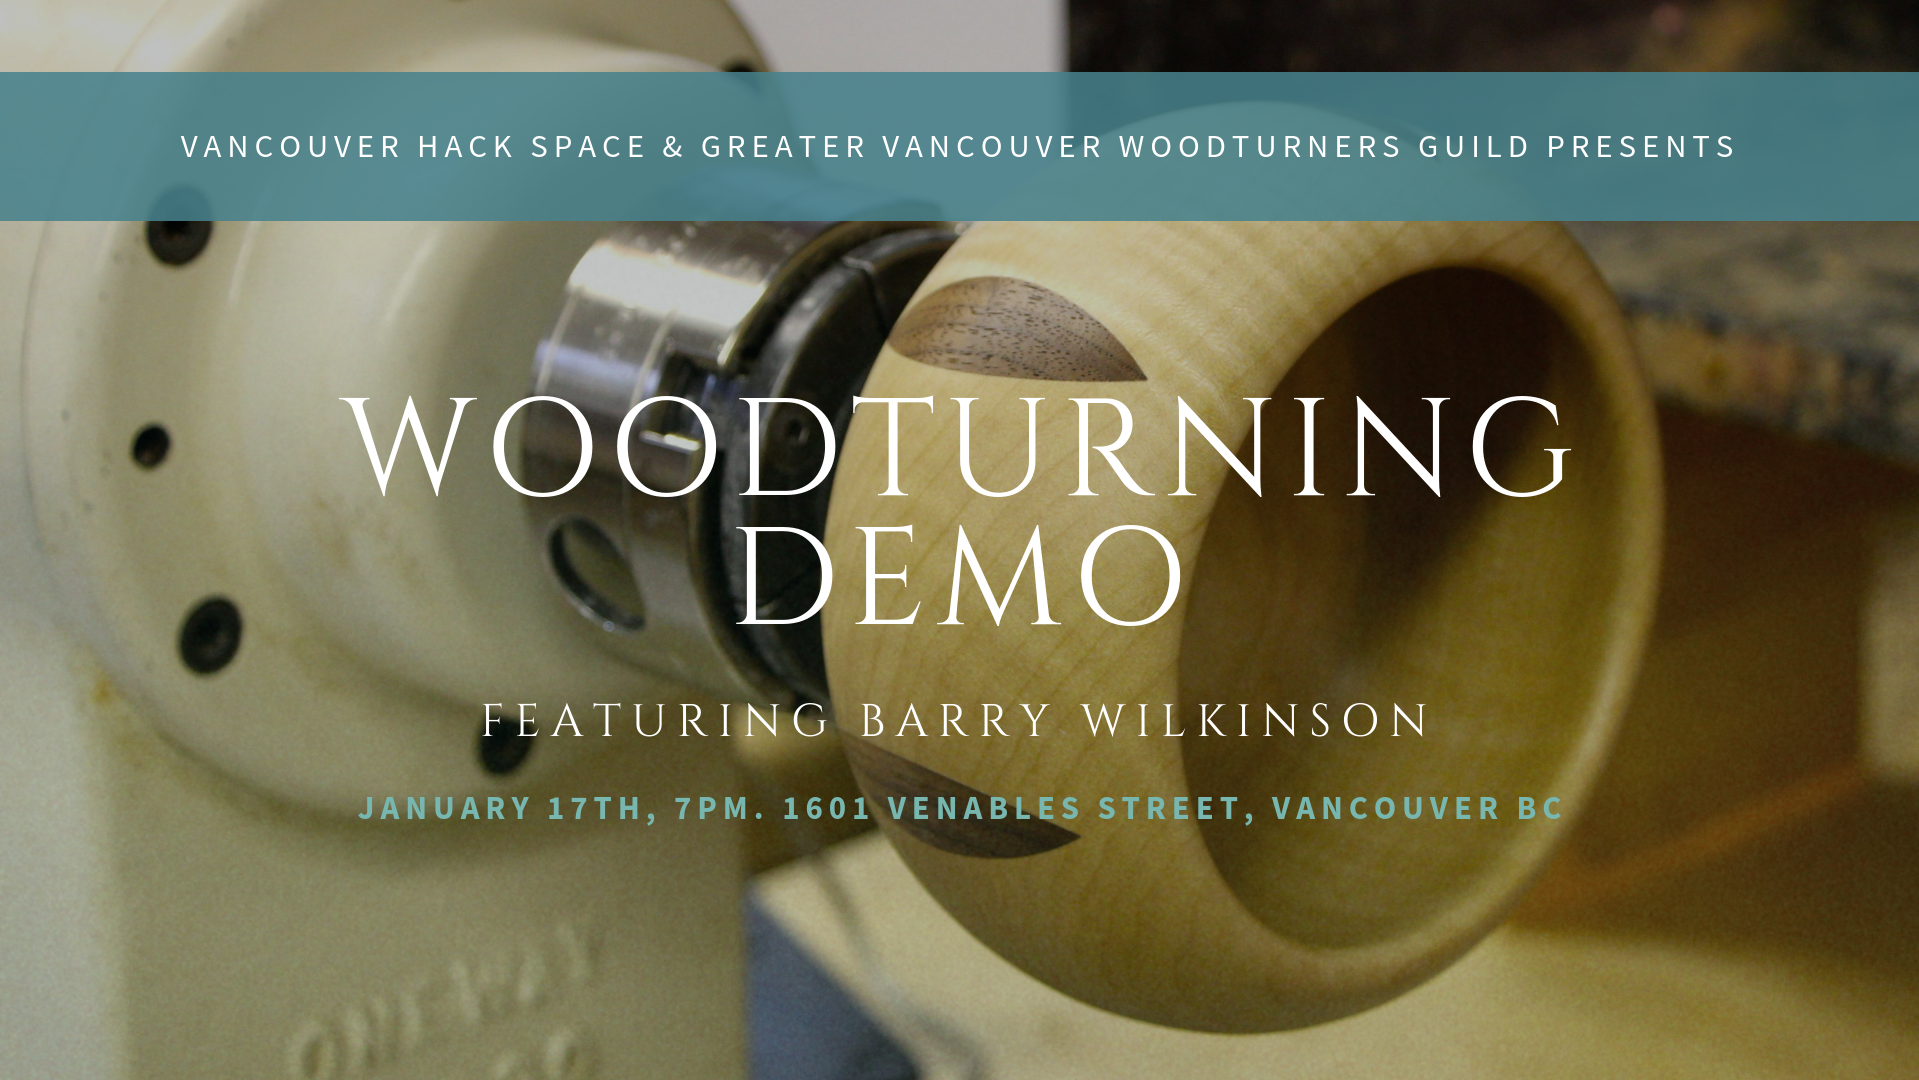 WOODTURNING DEMO Featuring Barry Wilkinson from Greater Vancouver Woodturning Guild